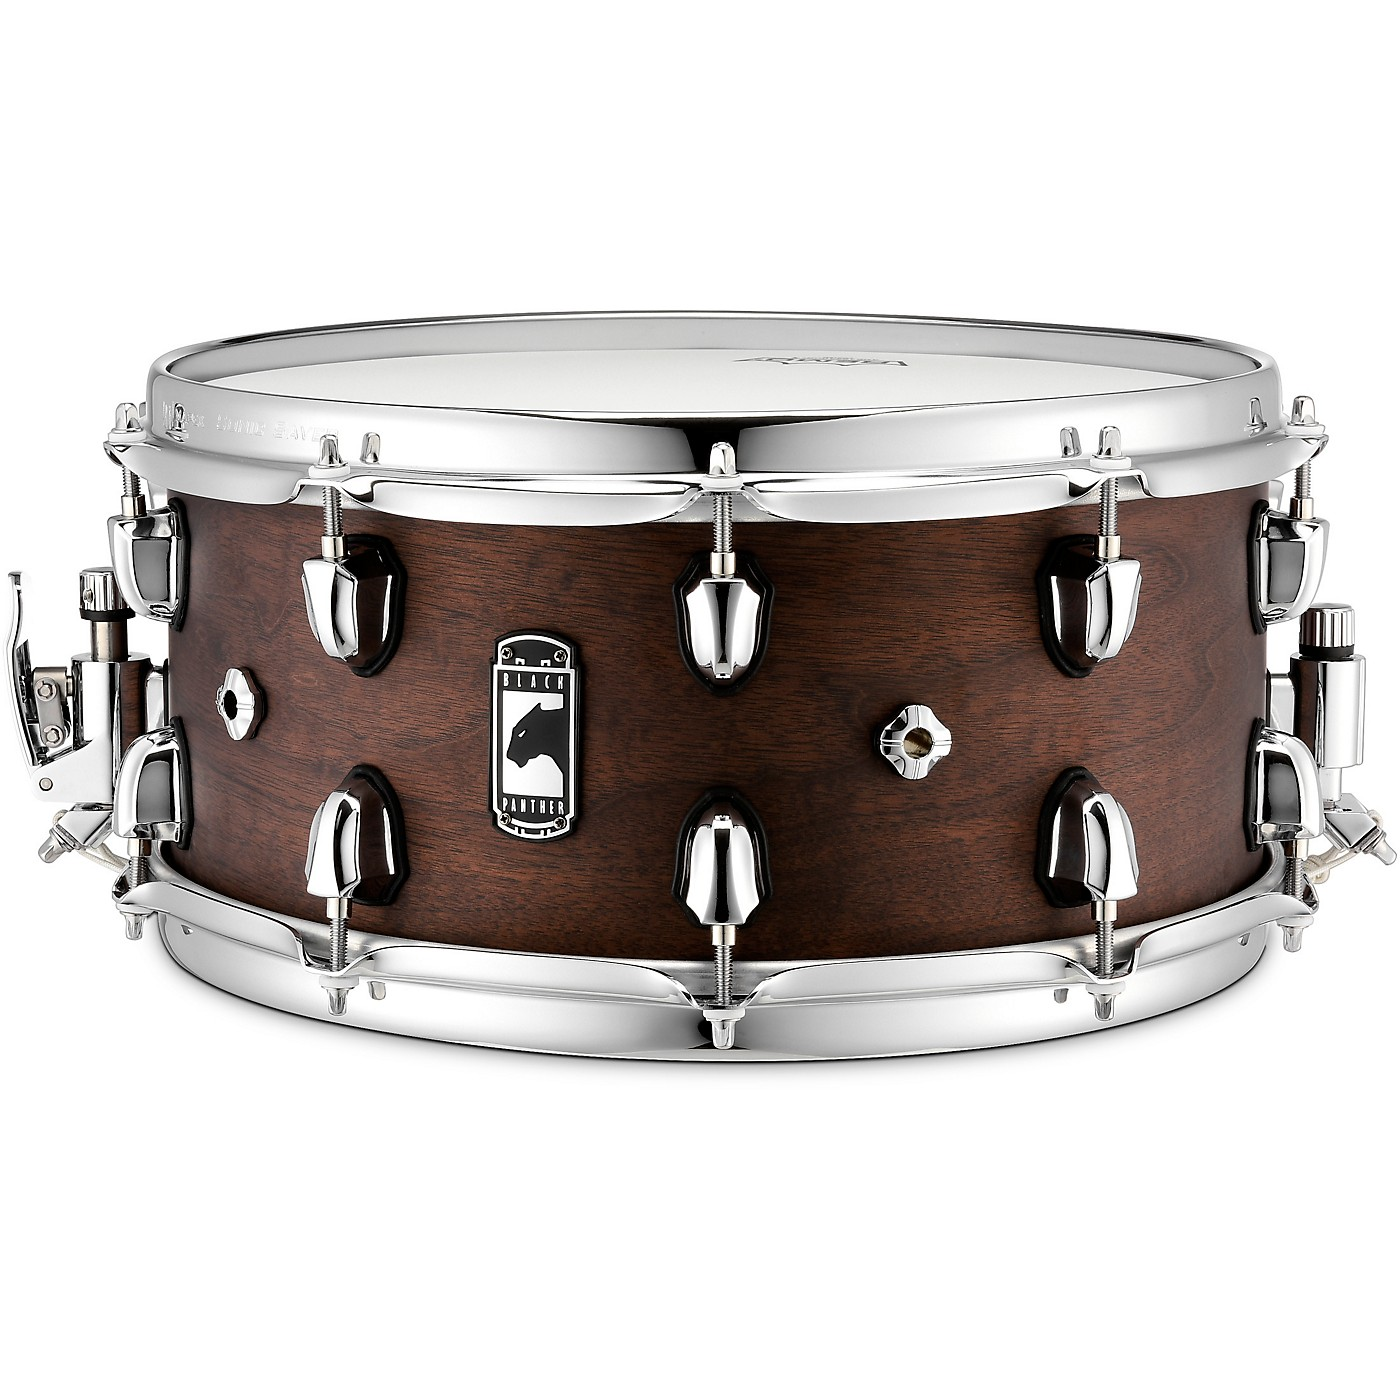 Mapex Special Edition 30th Anniversary Snare Drum thumbnail